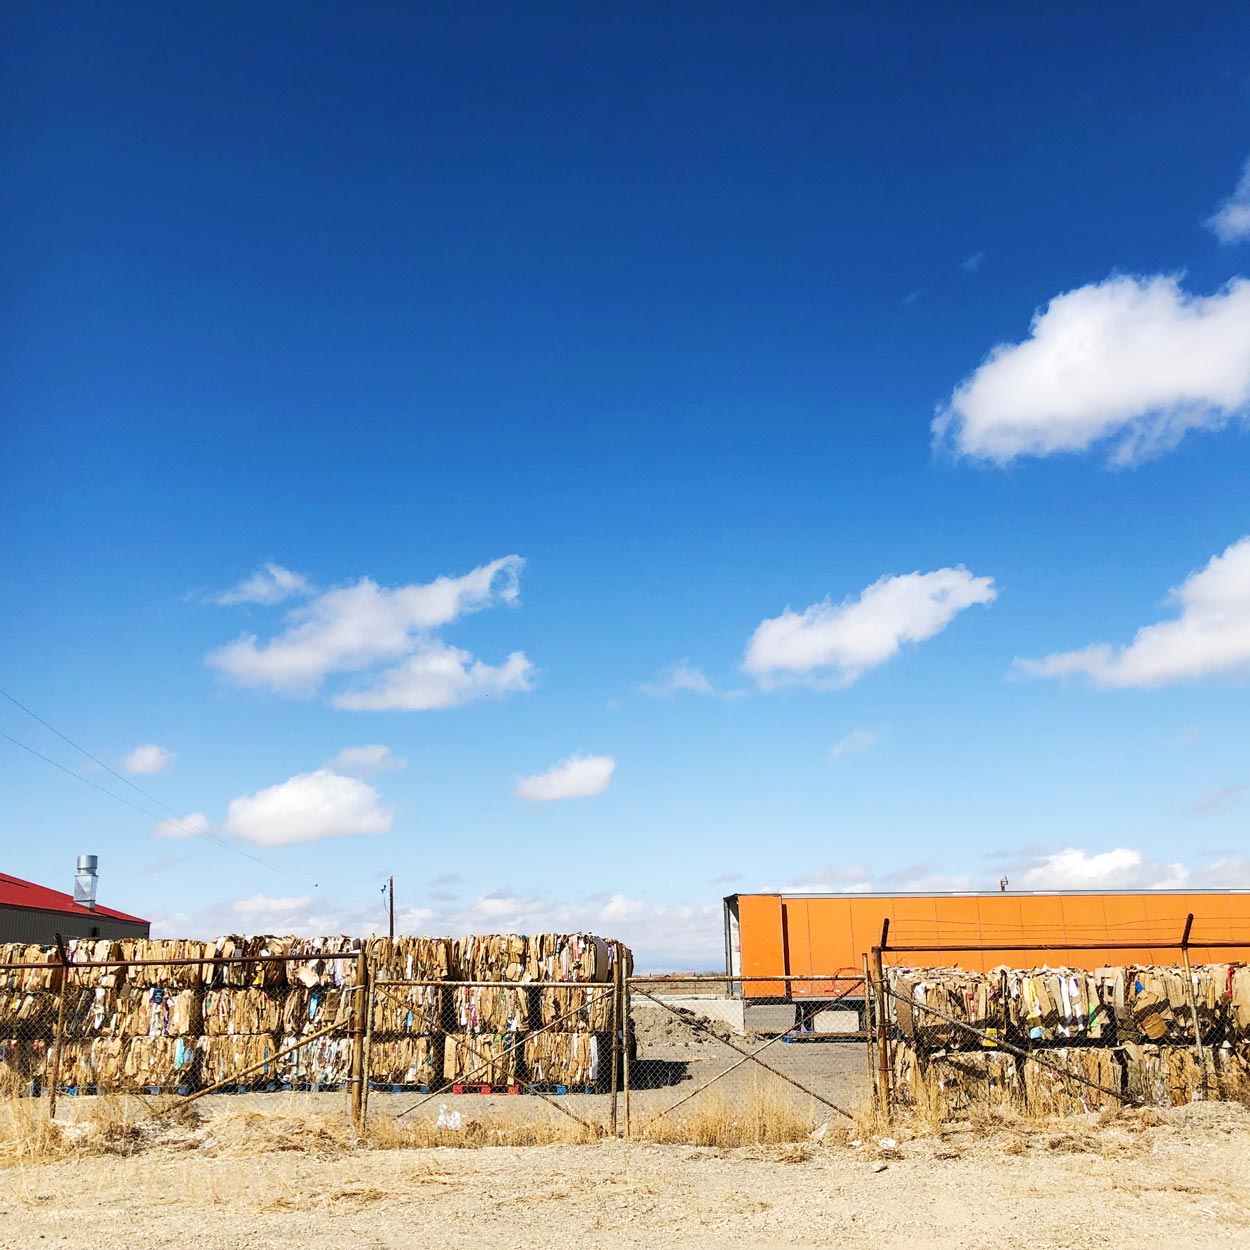 Utah - Creating local processing options for hard-to-recycle material in rural areas.